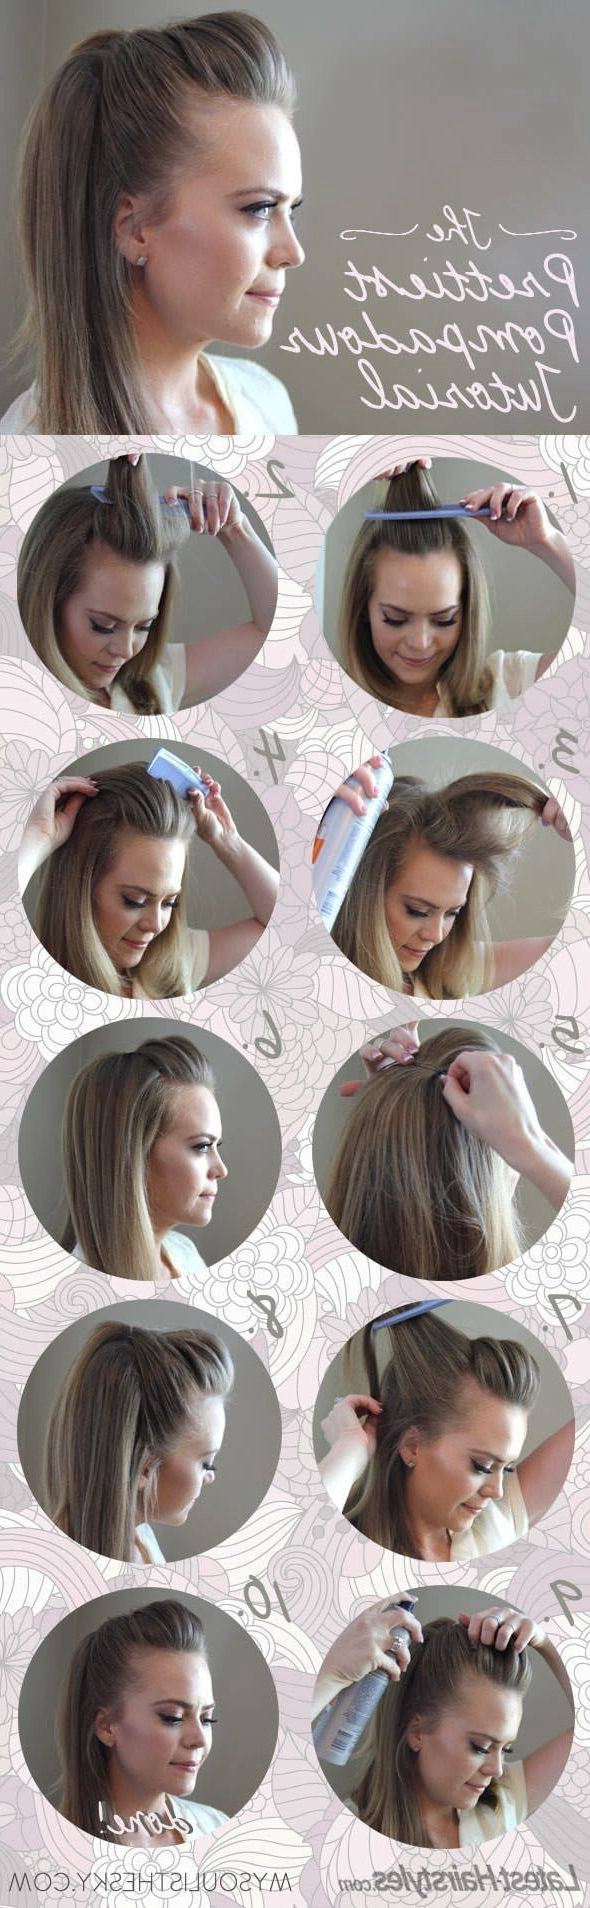 Pompadour Hairstyle Intended For Fashionable Pompadour Pony Hairstyles (View 12 of 20)